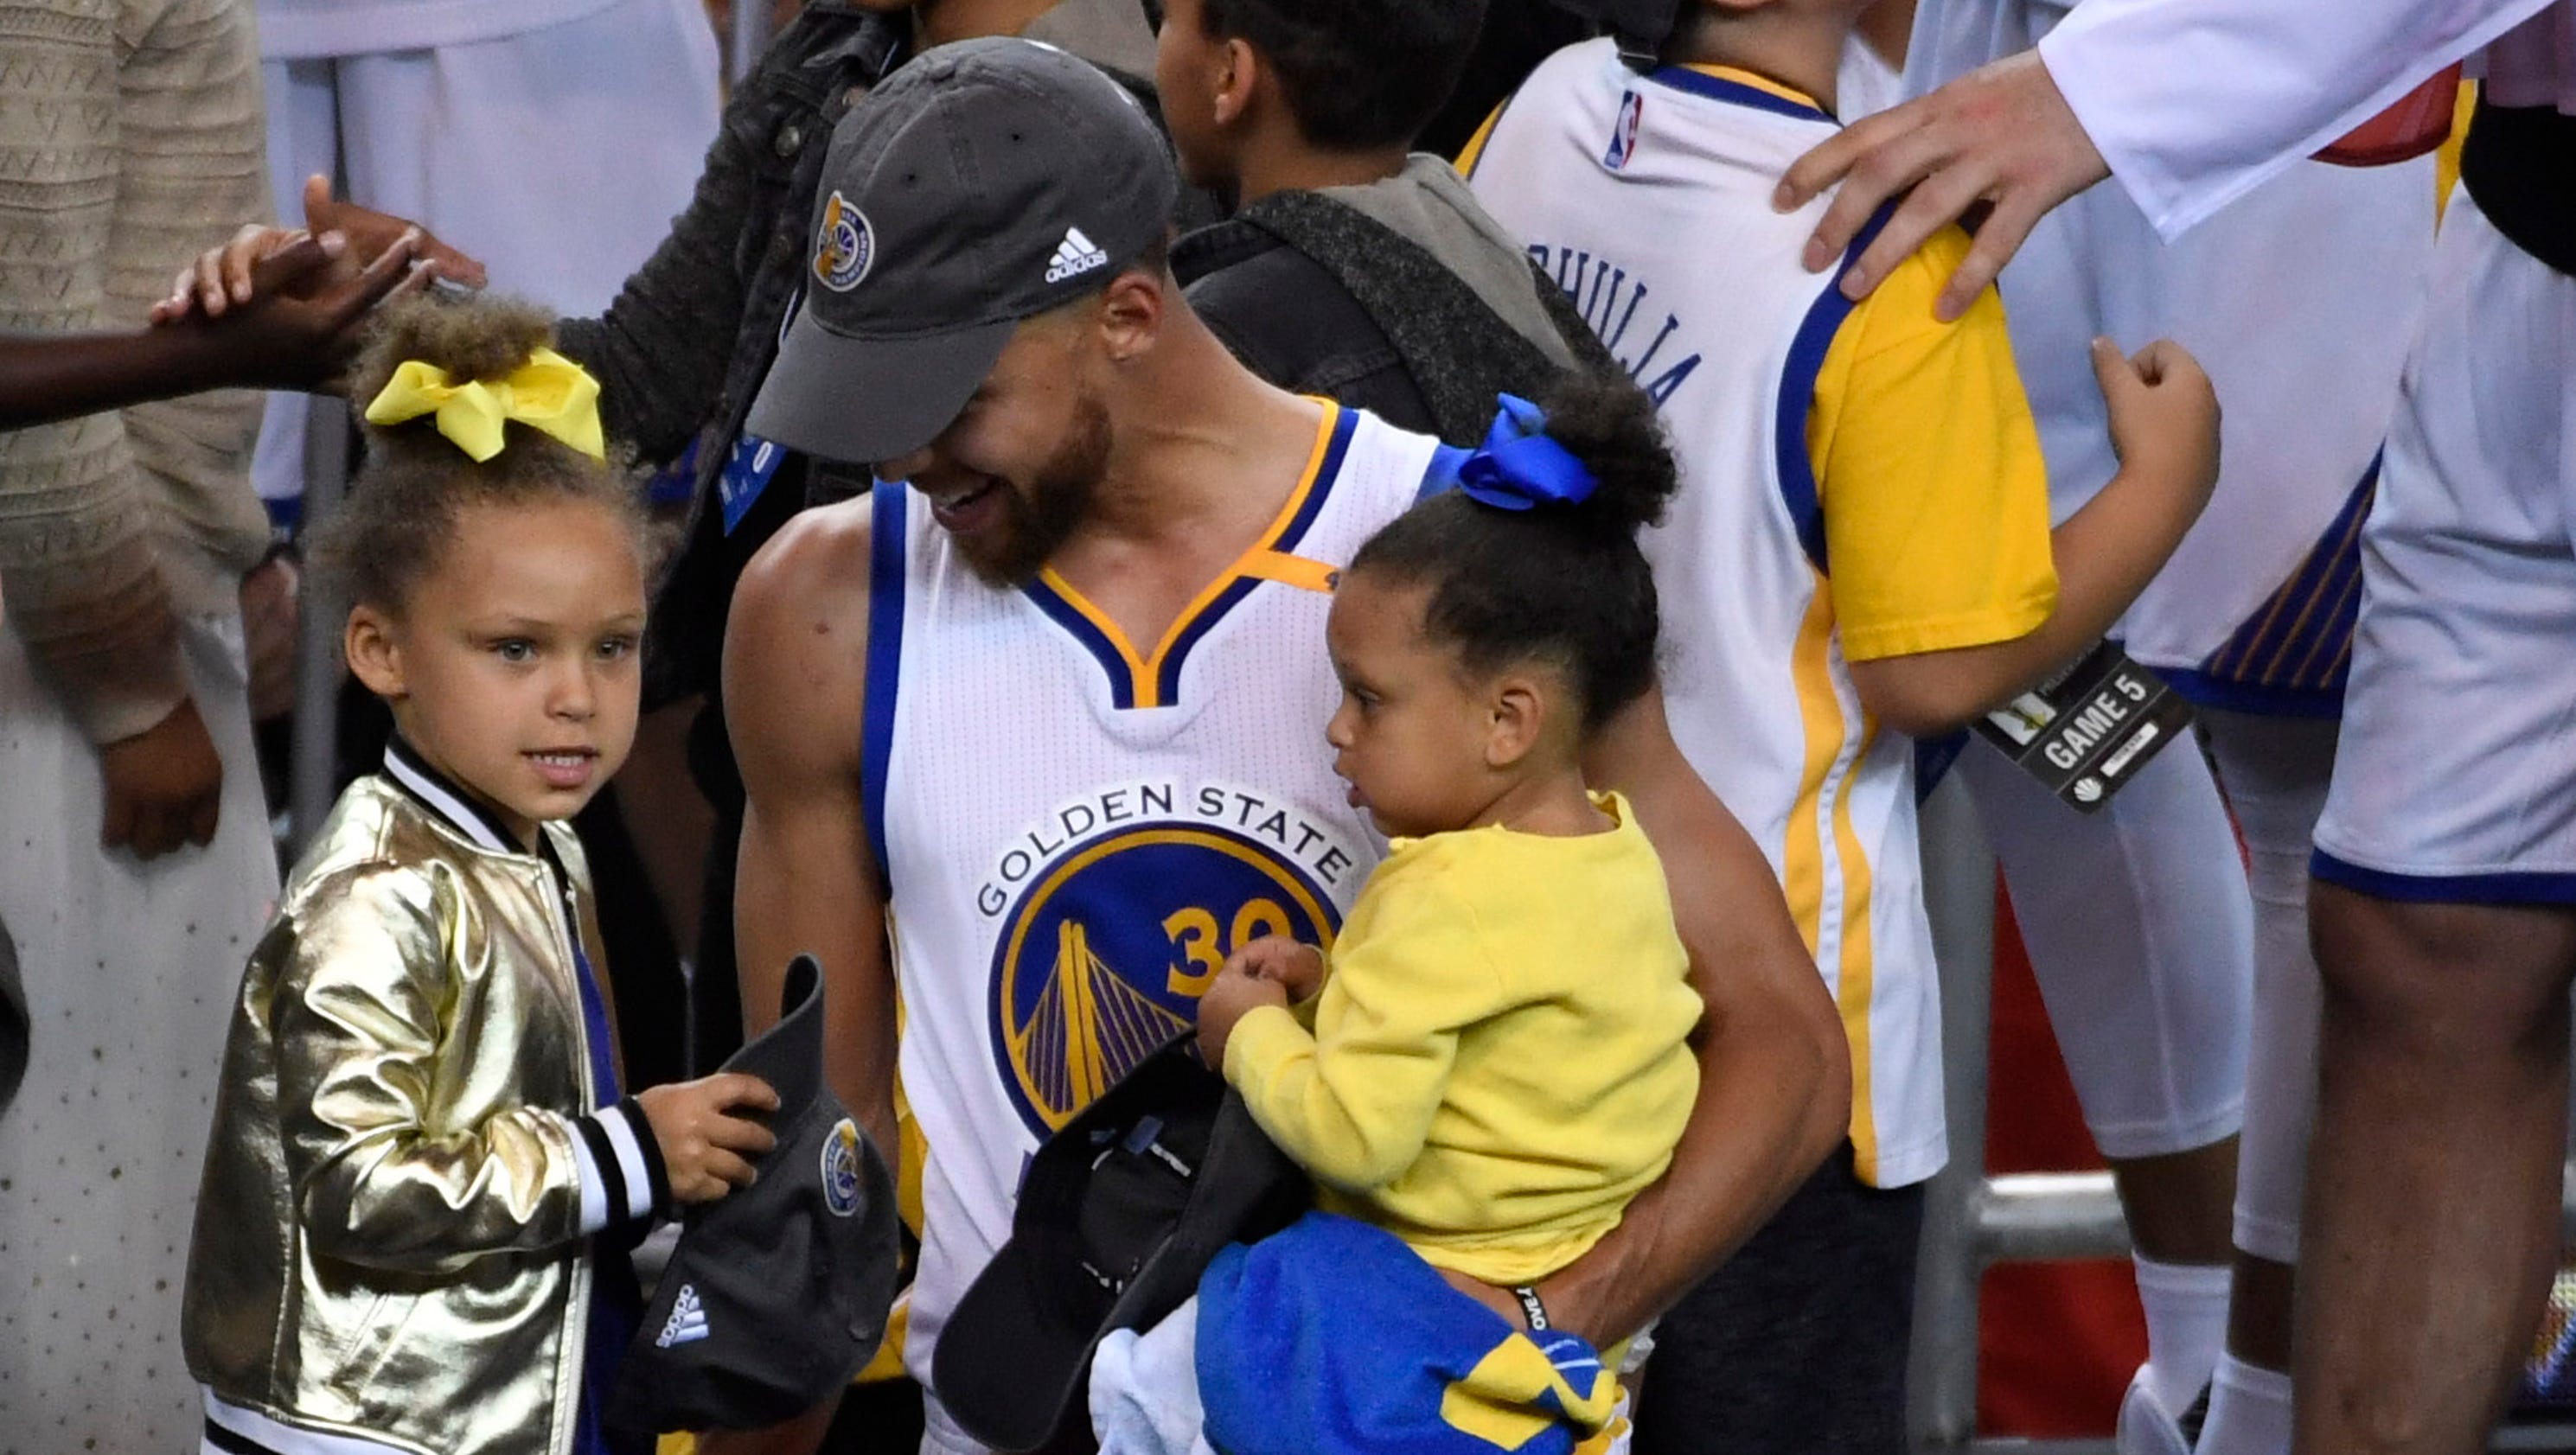 e2a8288b175b hollywoodlife.com Riley Curry returned to steal the show after Warriors   win usatoday.com Durant s ...